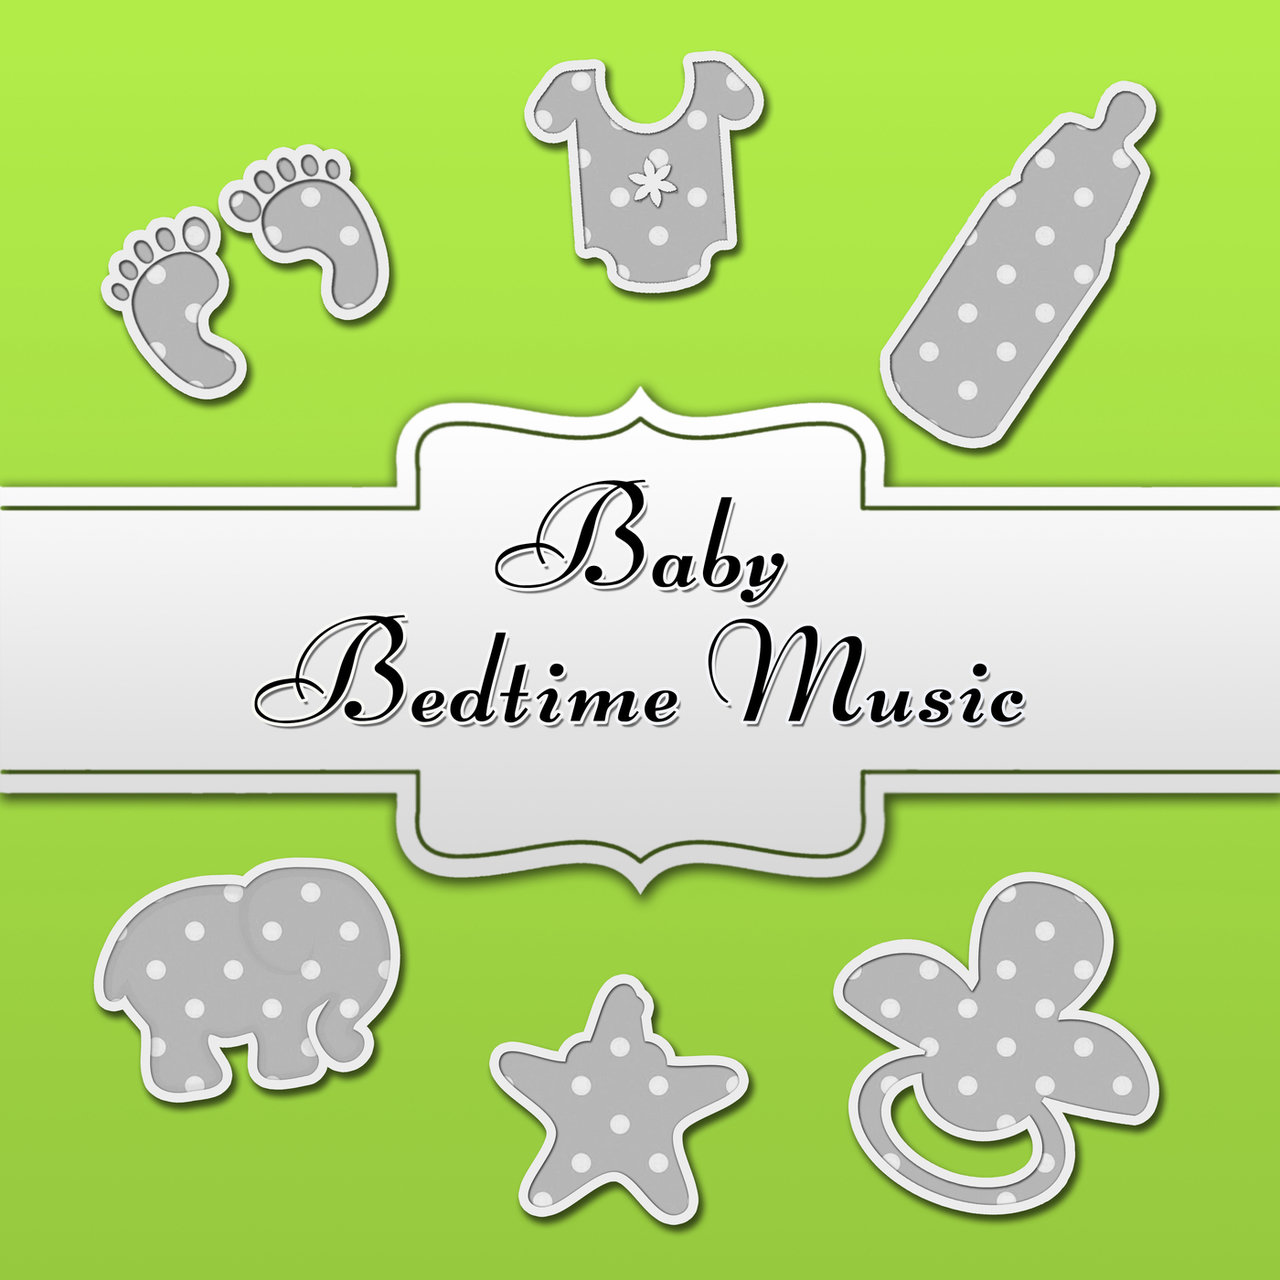 Baby bedtime music - Baby Bedtime Music Newborn Sleep Music Songs For Toddlers Sleeping Baby Aid Relaxing Lullabies And Peaceful Piano For Babies Soothing Music For